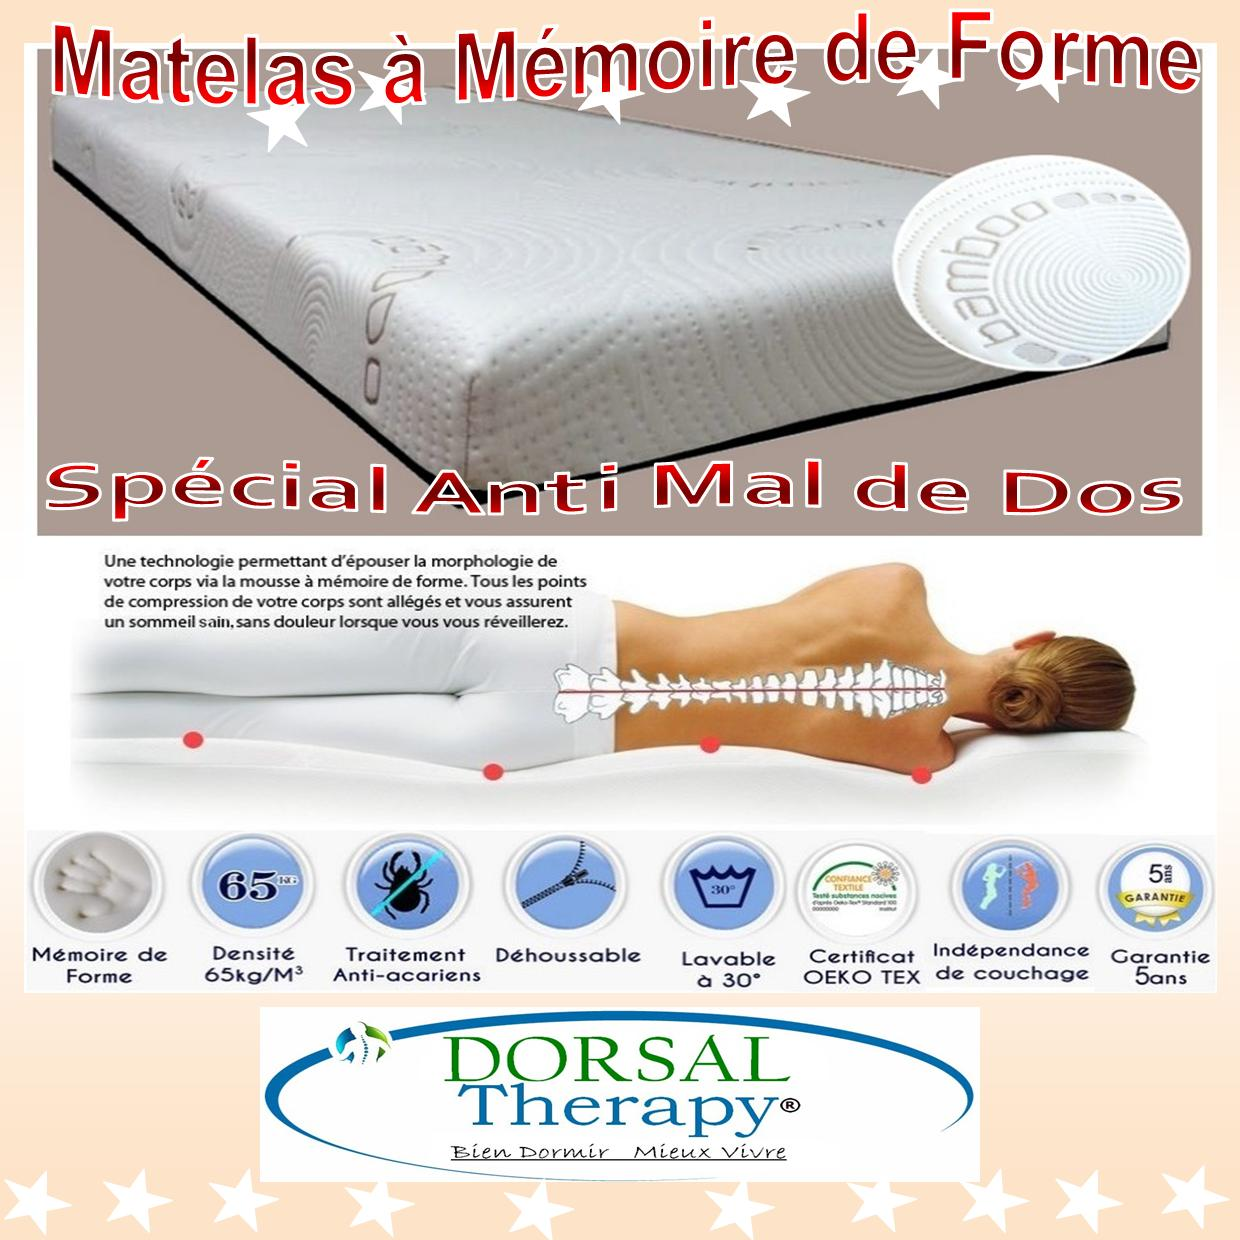 matelas a memoire de forme medical au maroc adresse. Black Bedroom Furniture Sets. Home Design Ideas